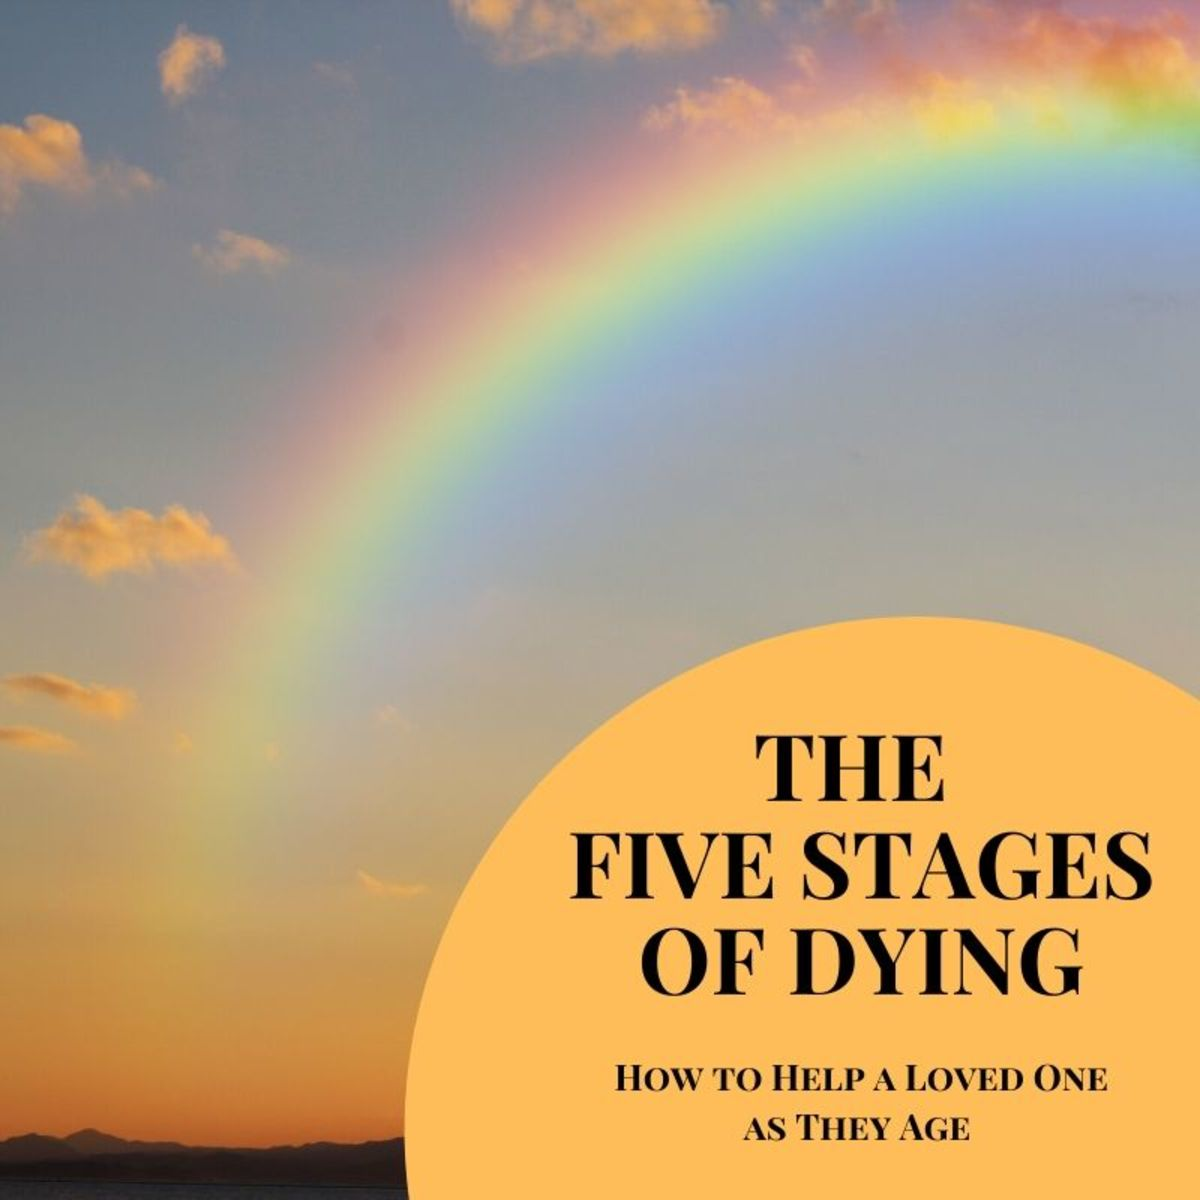 The Stages of Dying Checklist